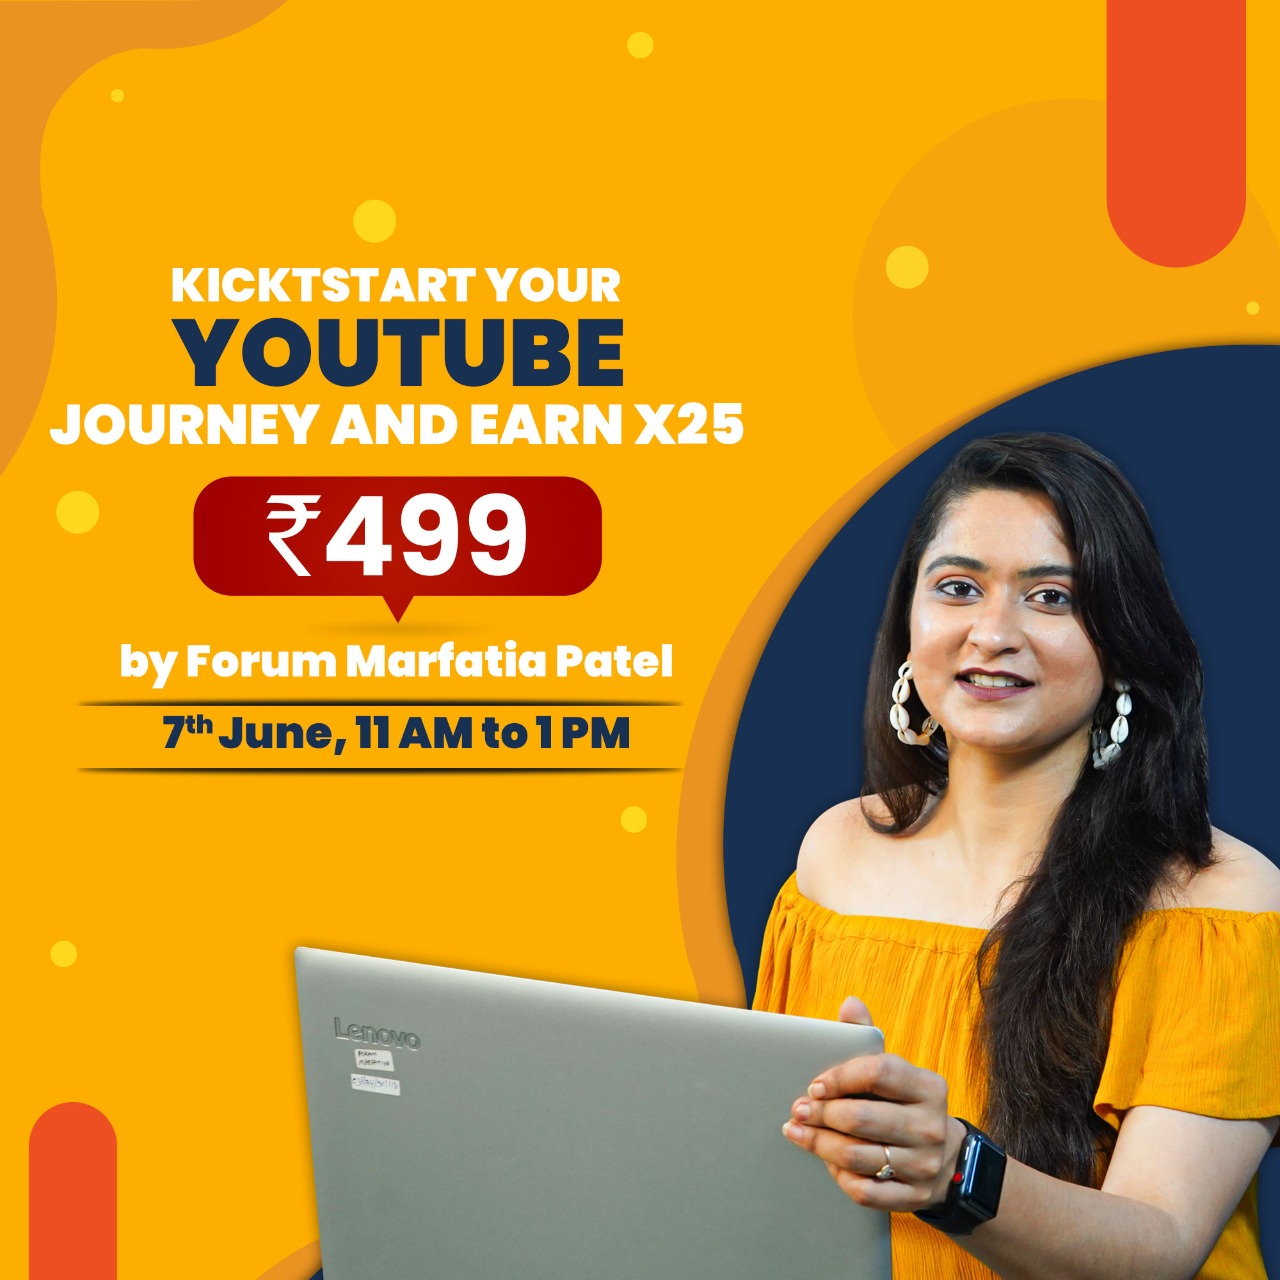 Kickstart your YouTube journey and earn X25